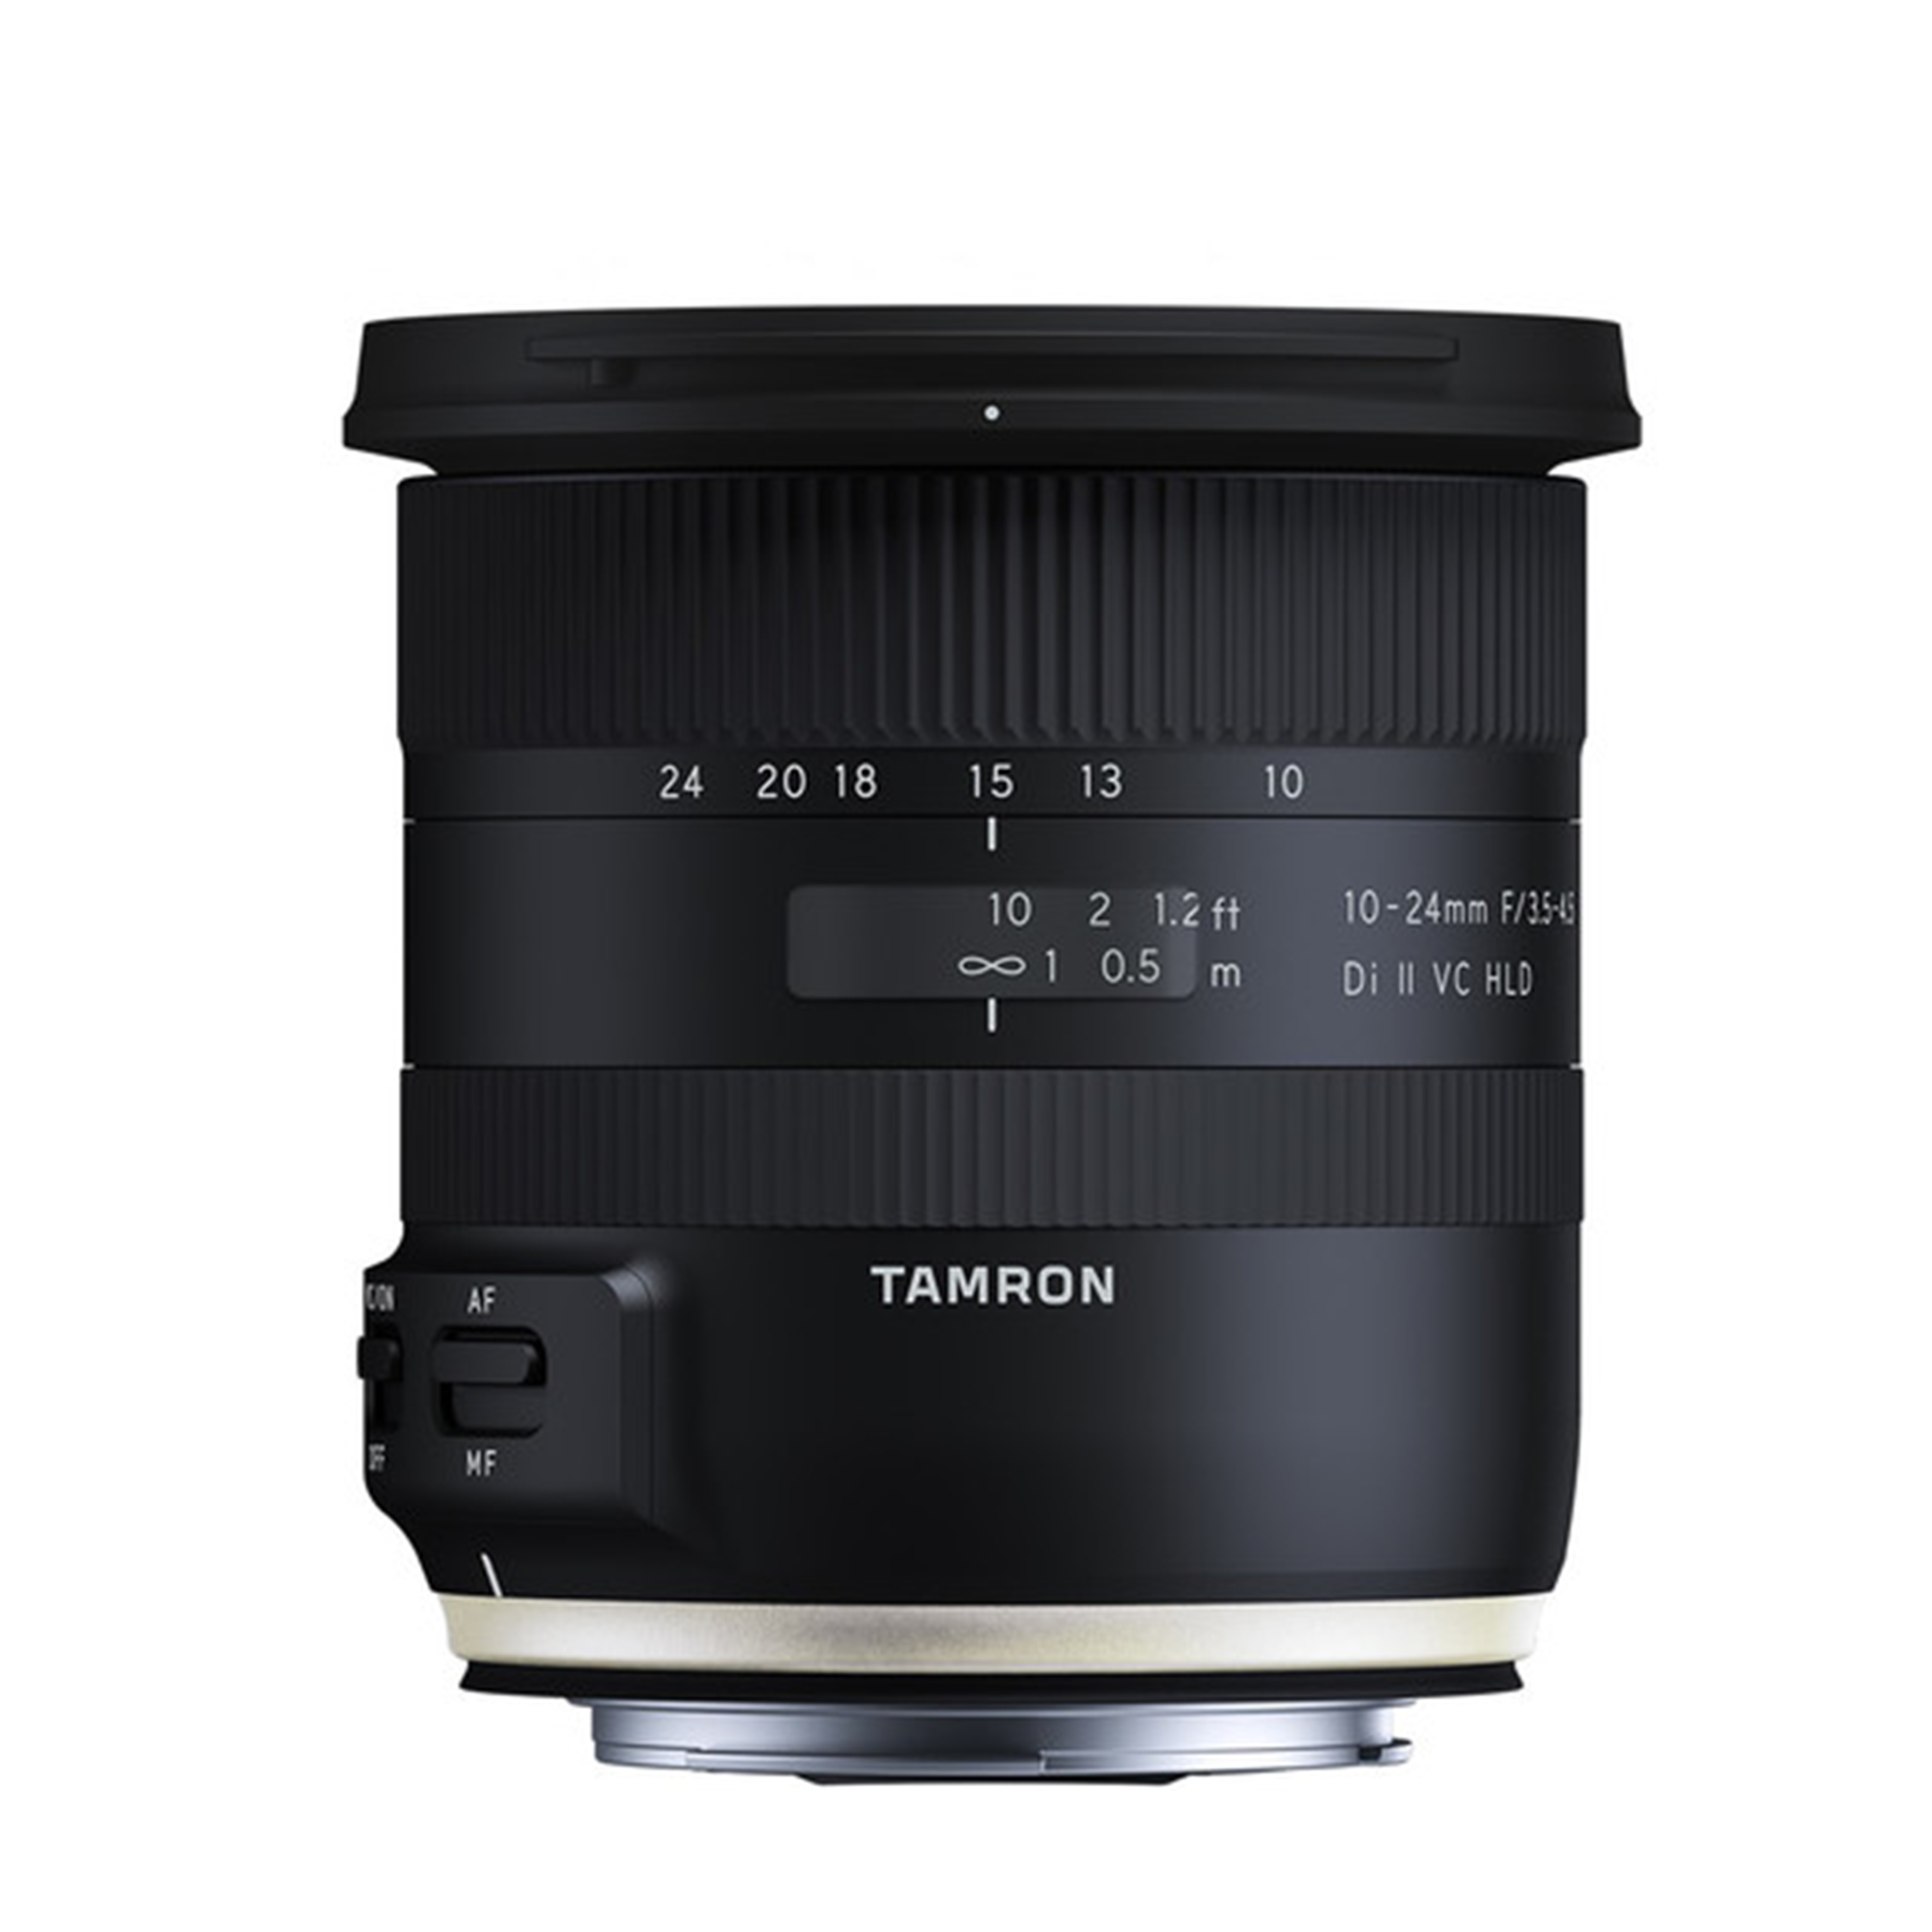 Tamron 10-24mm f/3.5-4.5 Di II VC HLD Lens for Canon